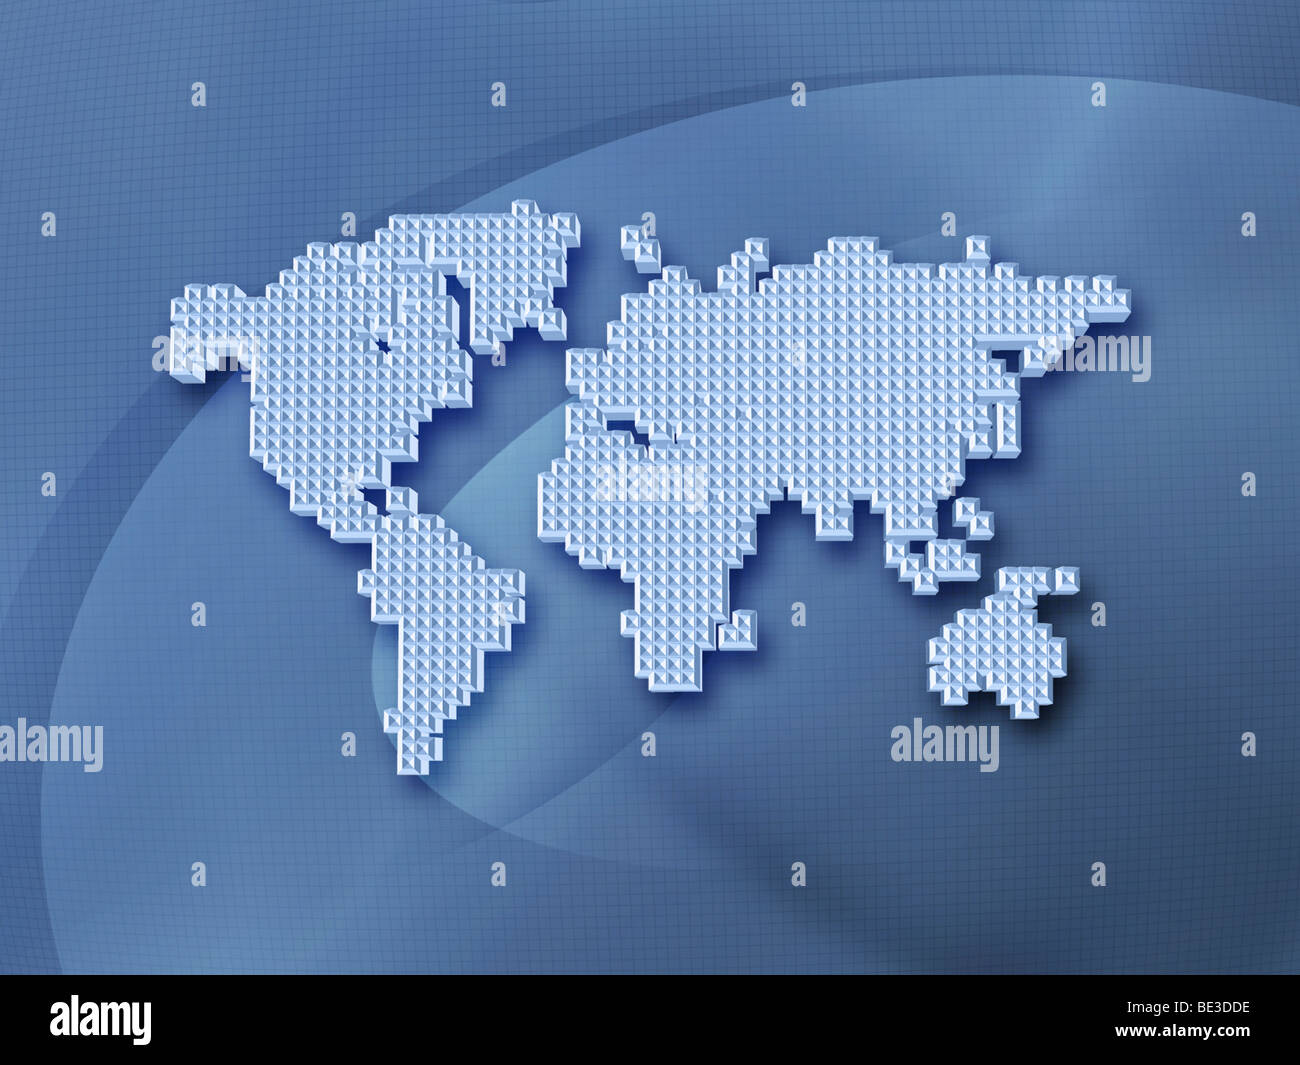 Digitally generated image of the world in pixels. - Stock Image